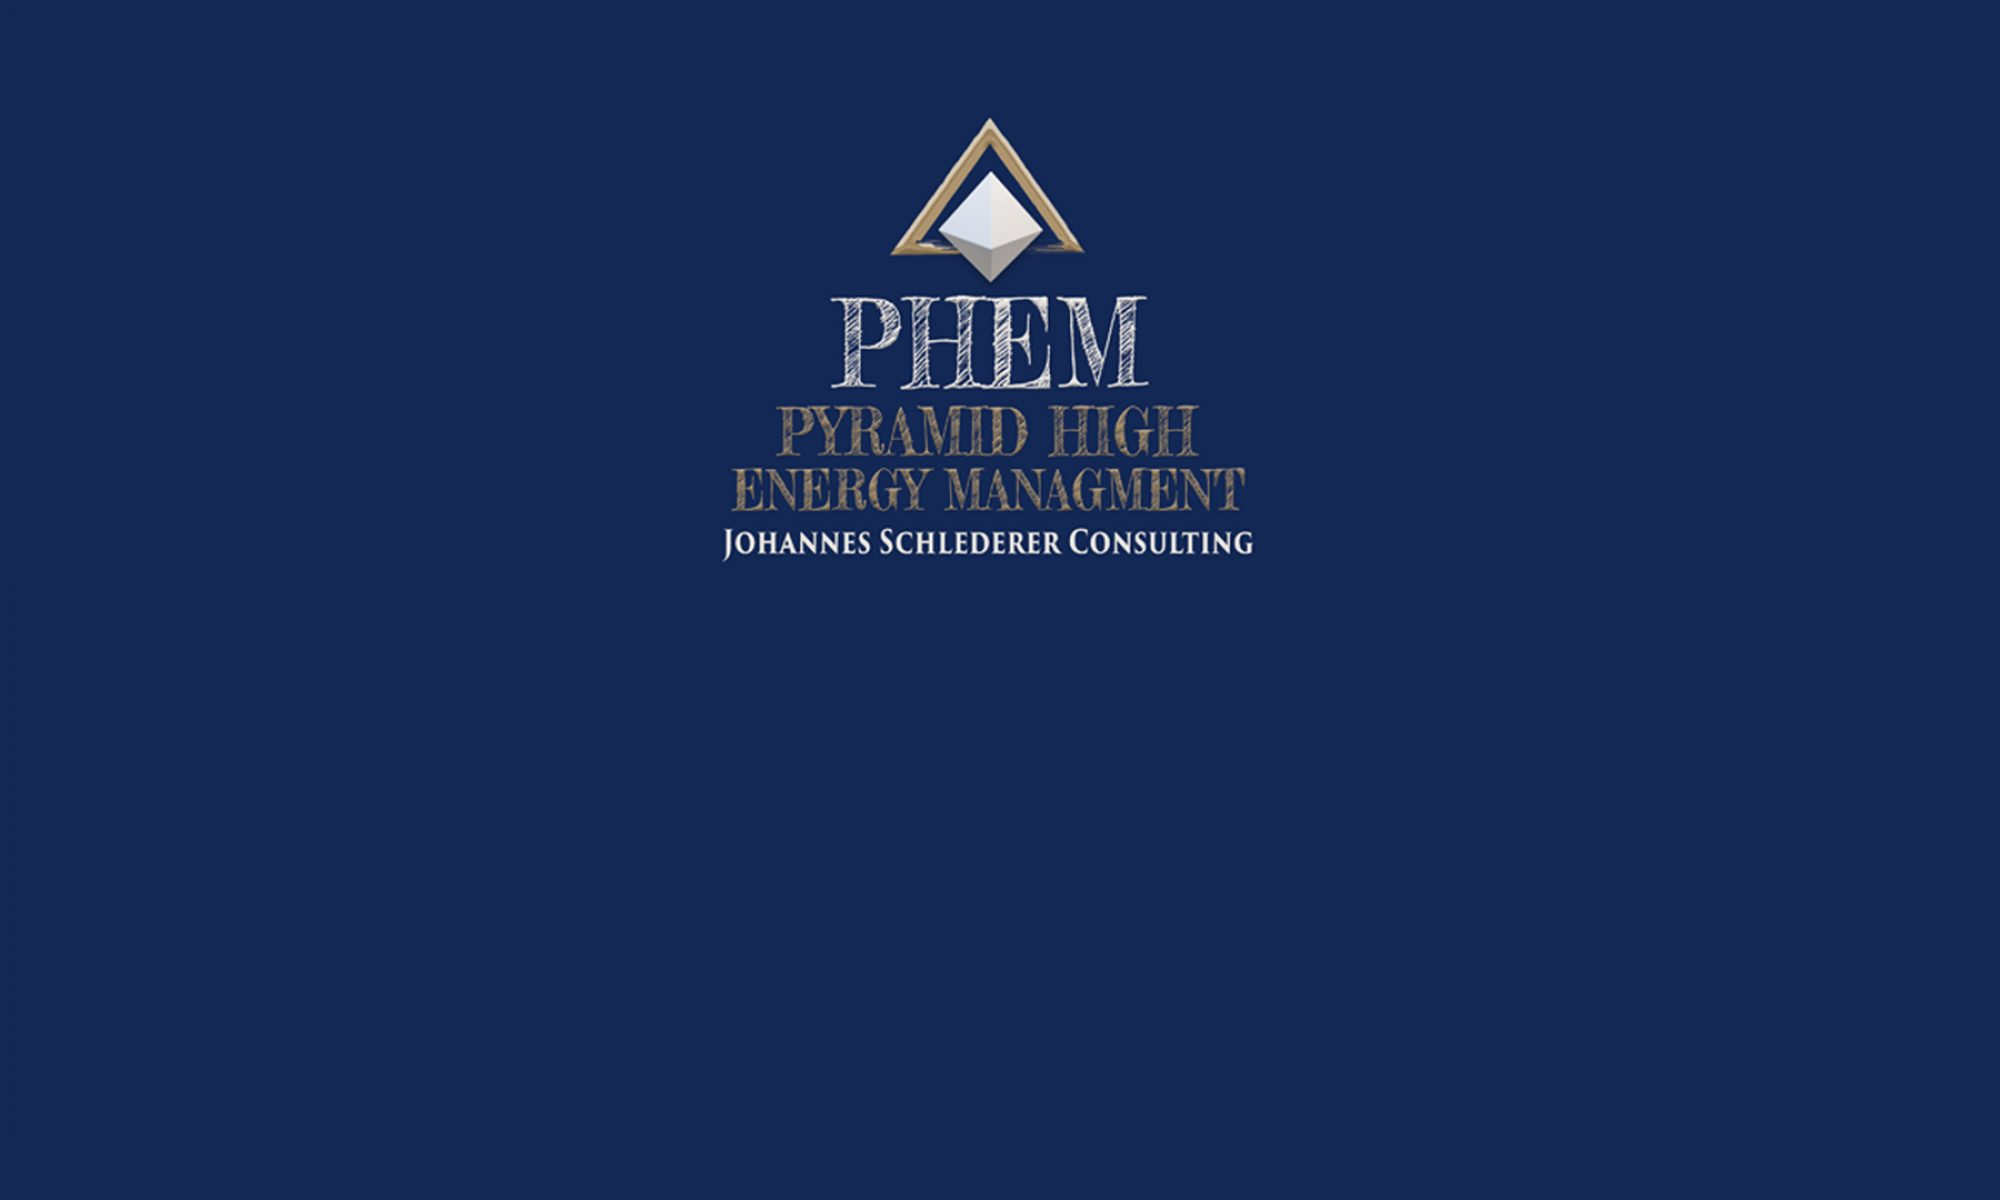 PHEM ~ Pyramid High Energy Management